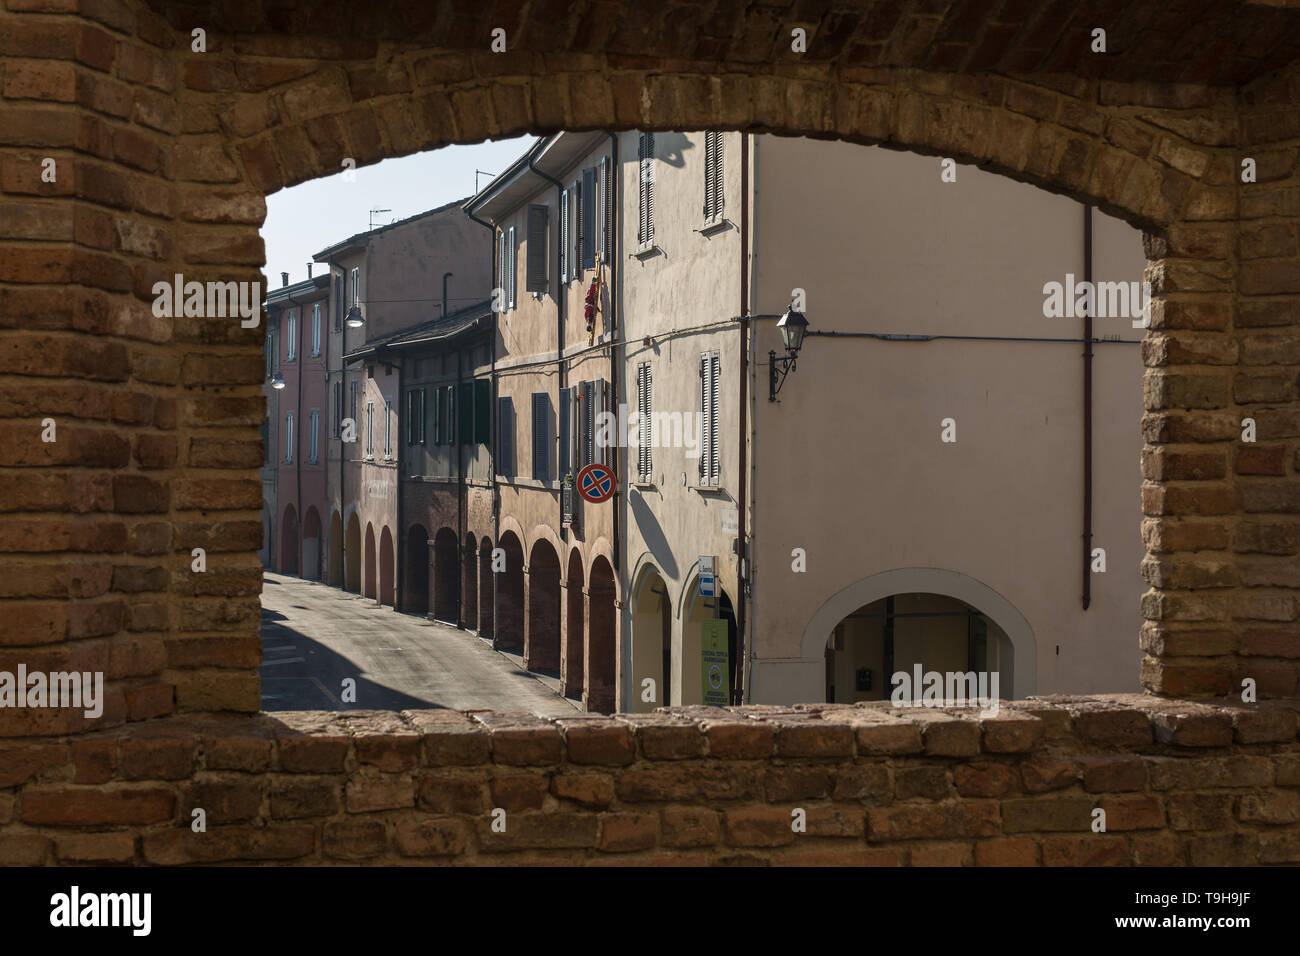 View from a Window in the Castle: Main Street, Colonnade and Houses in Fontanellato in Parma, Italy. - Stock Image